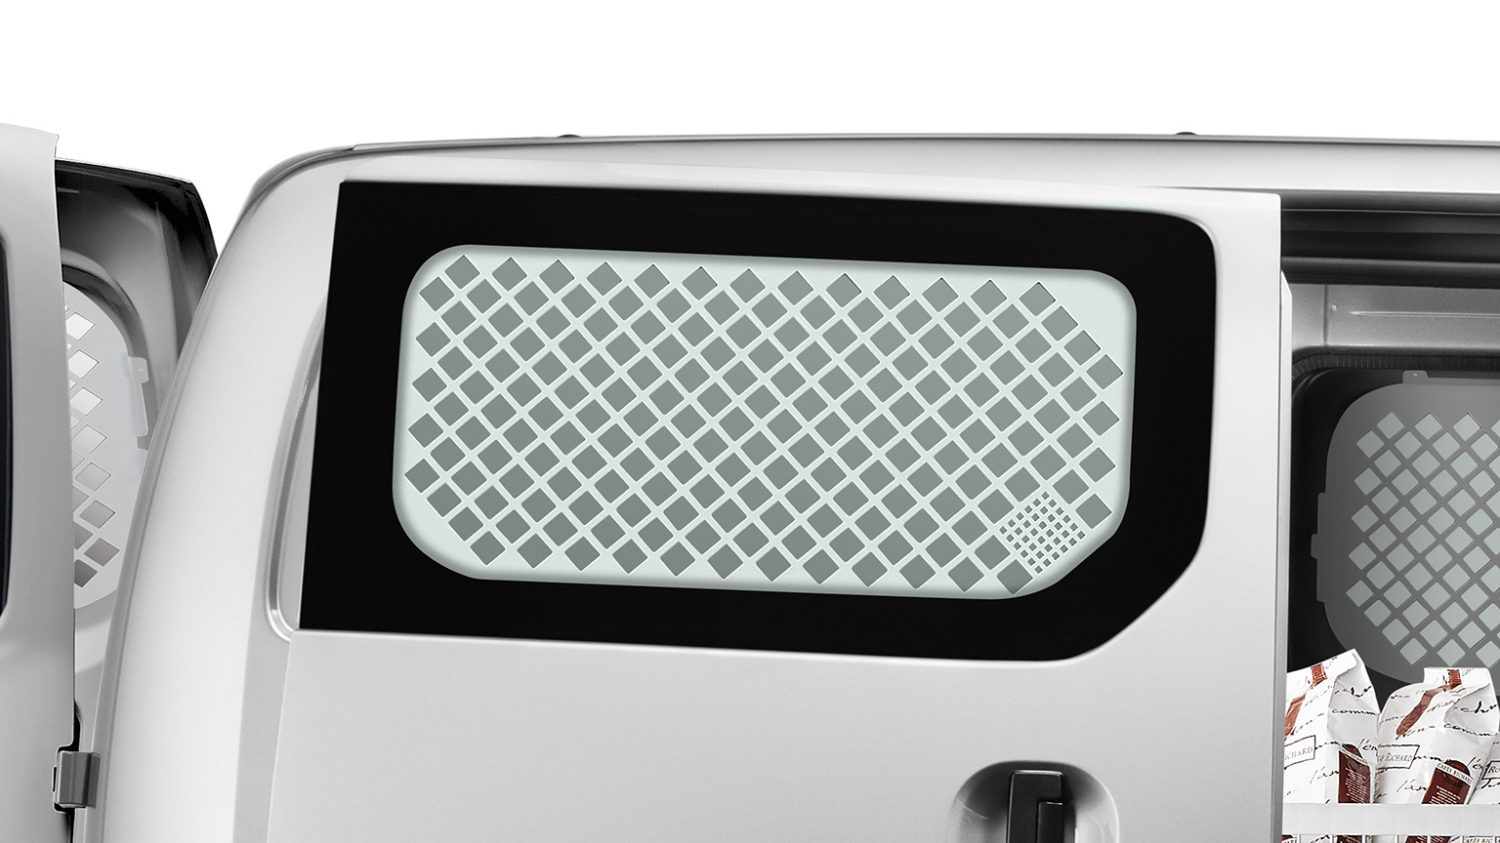 Nissan NV200 - Interior - Sliding door protection grille